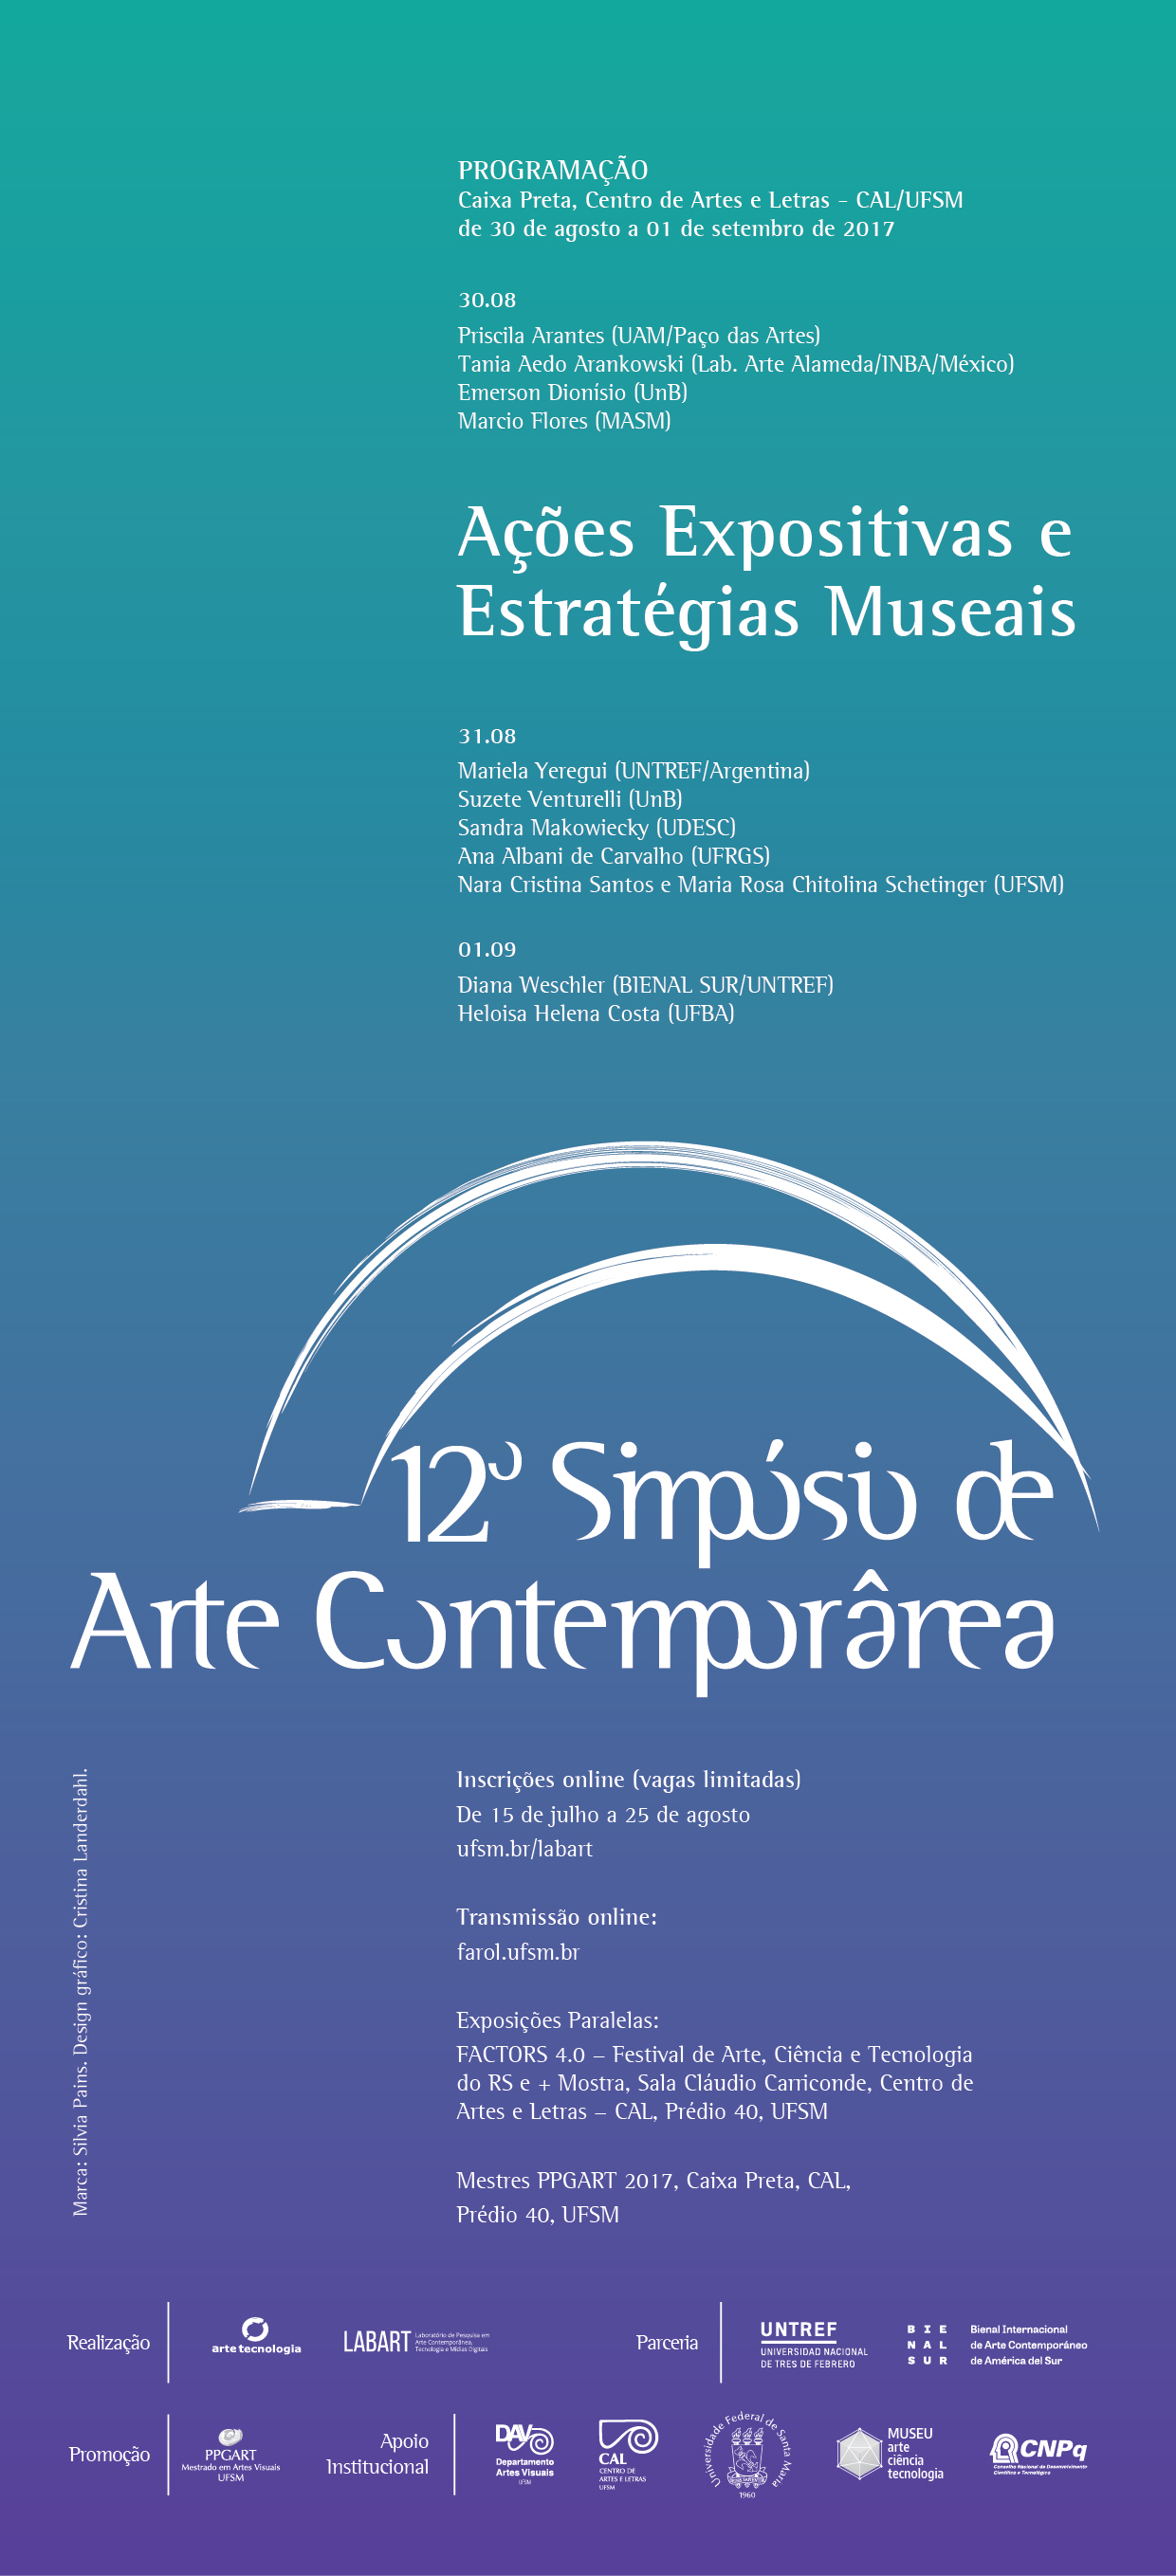 12 simposio de arte contemporanea2017 cartaz